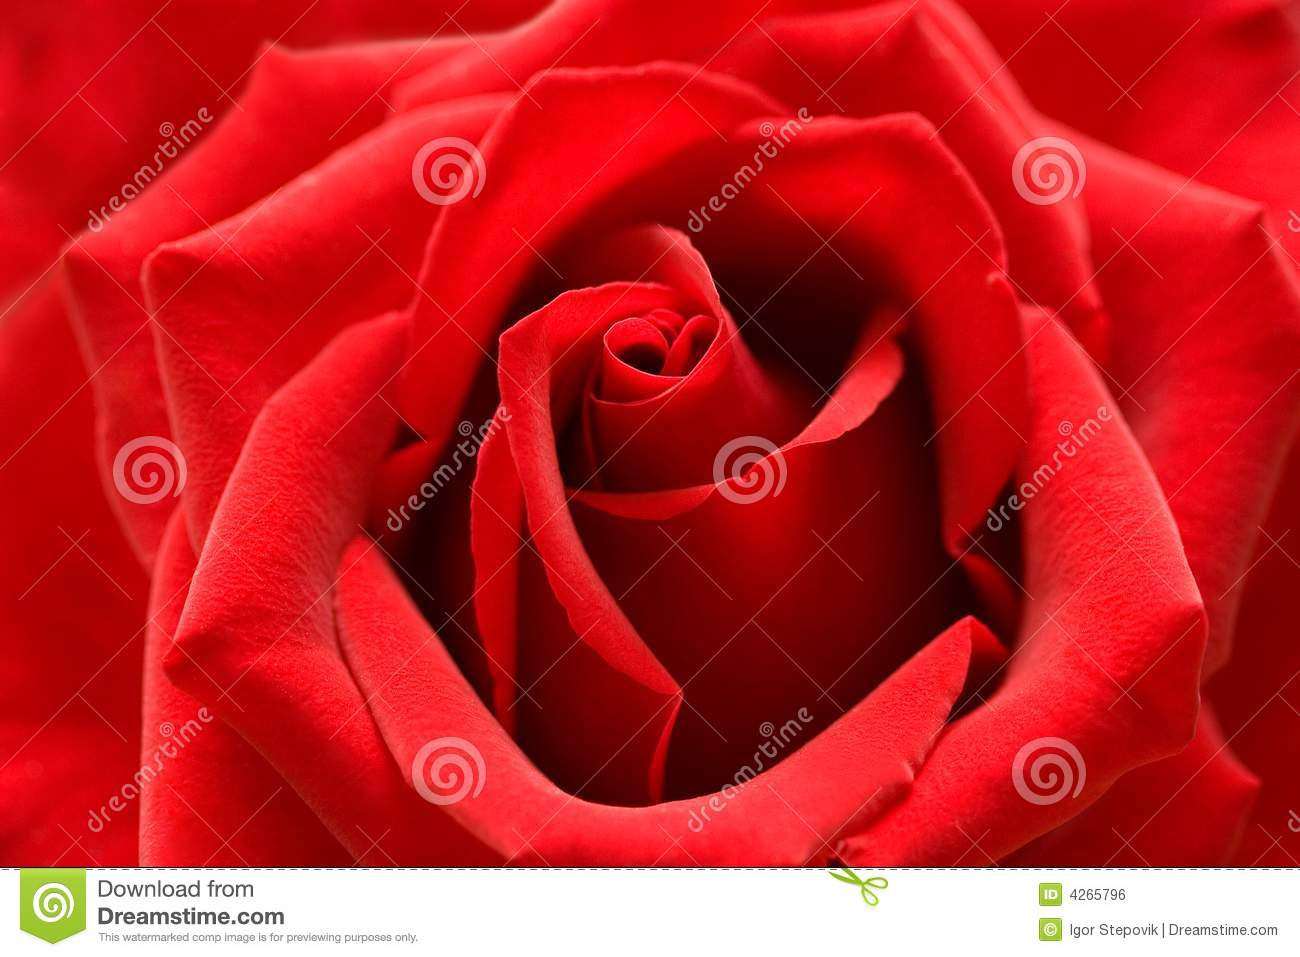 red rose with heart symbol from petal in center stock photo image 4265796. Black Bedroom Furniture Sets. Home Design Ideas